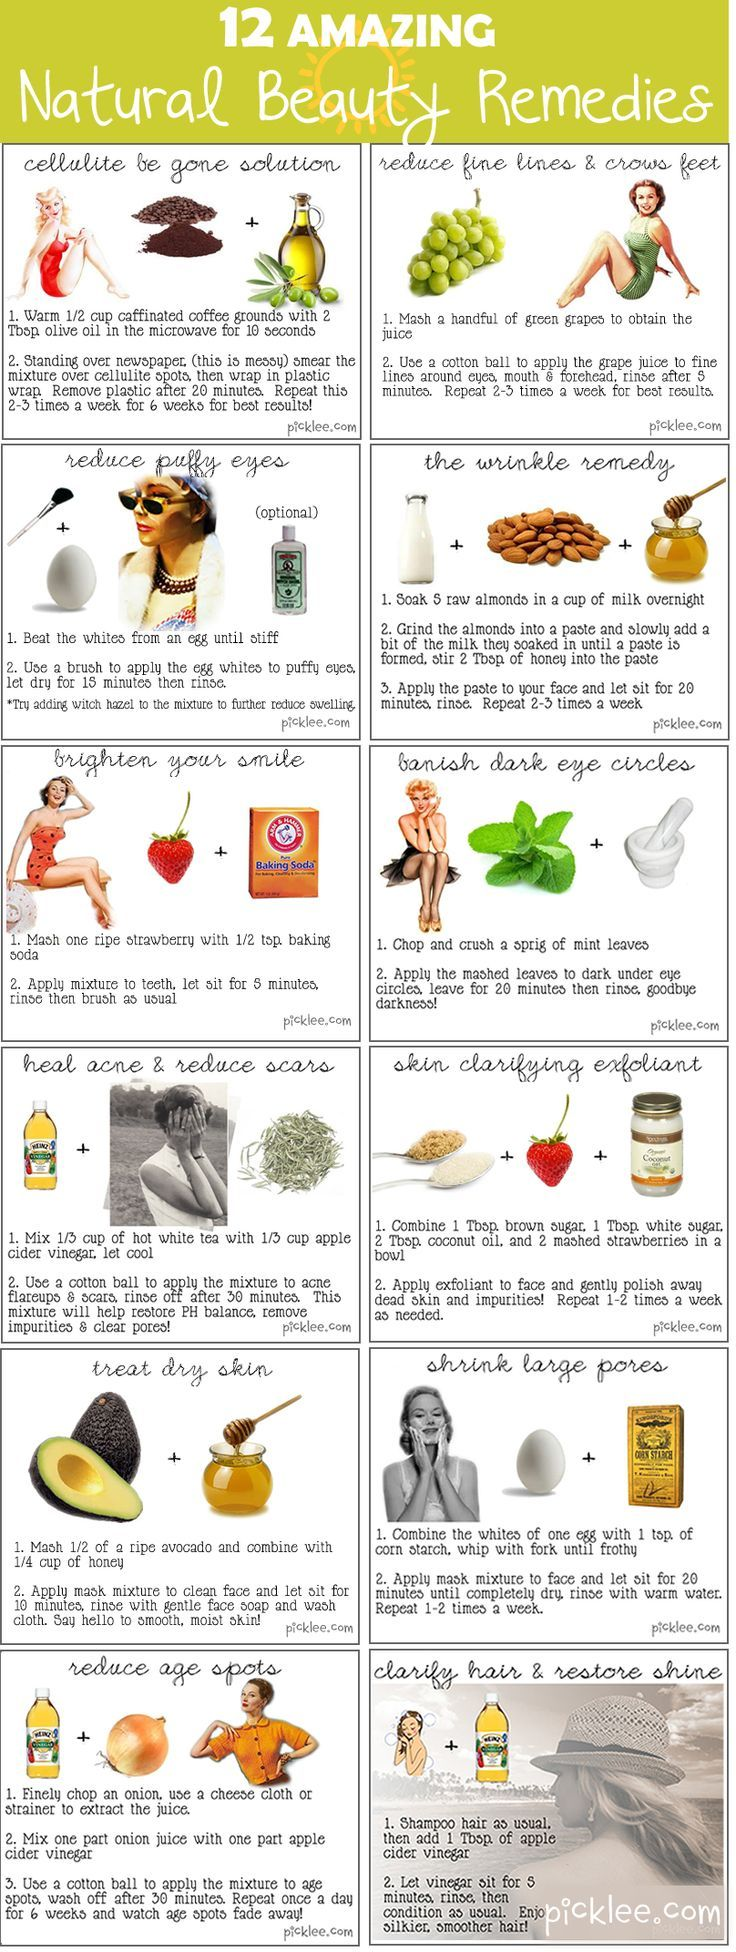 Beauty recipes target puffy eyes cellulite wrinkles dry skin